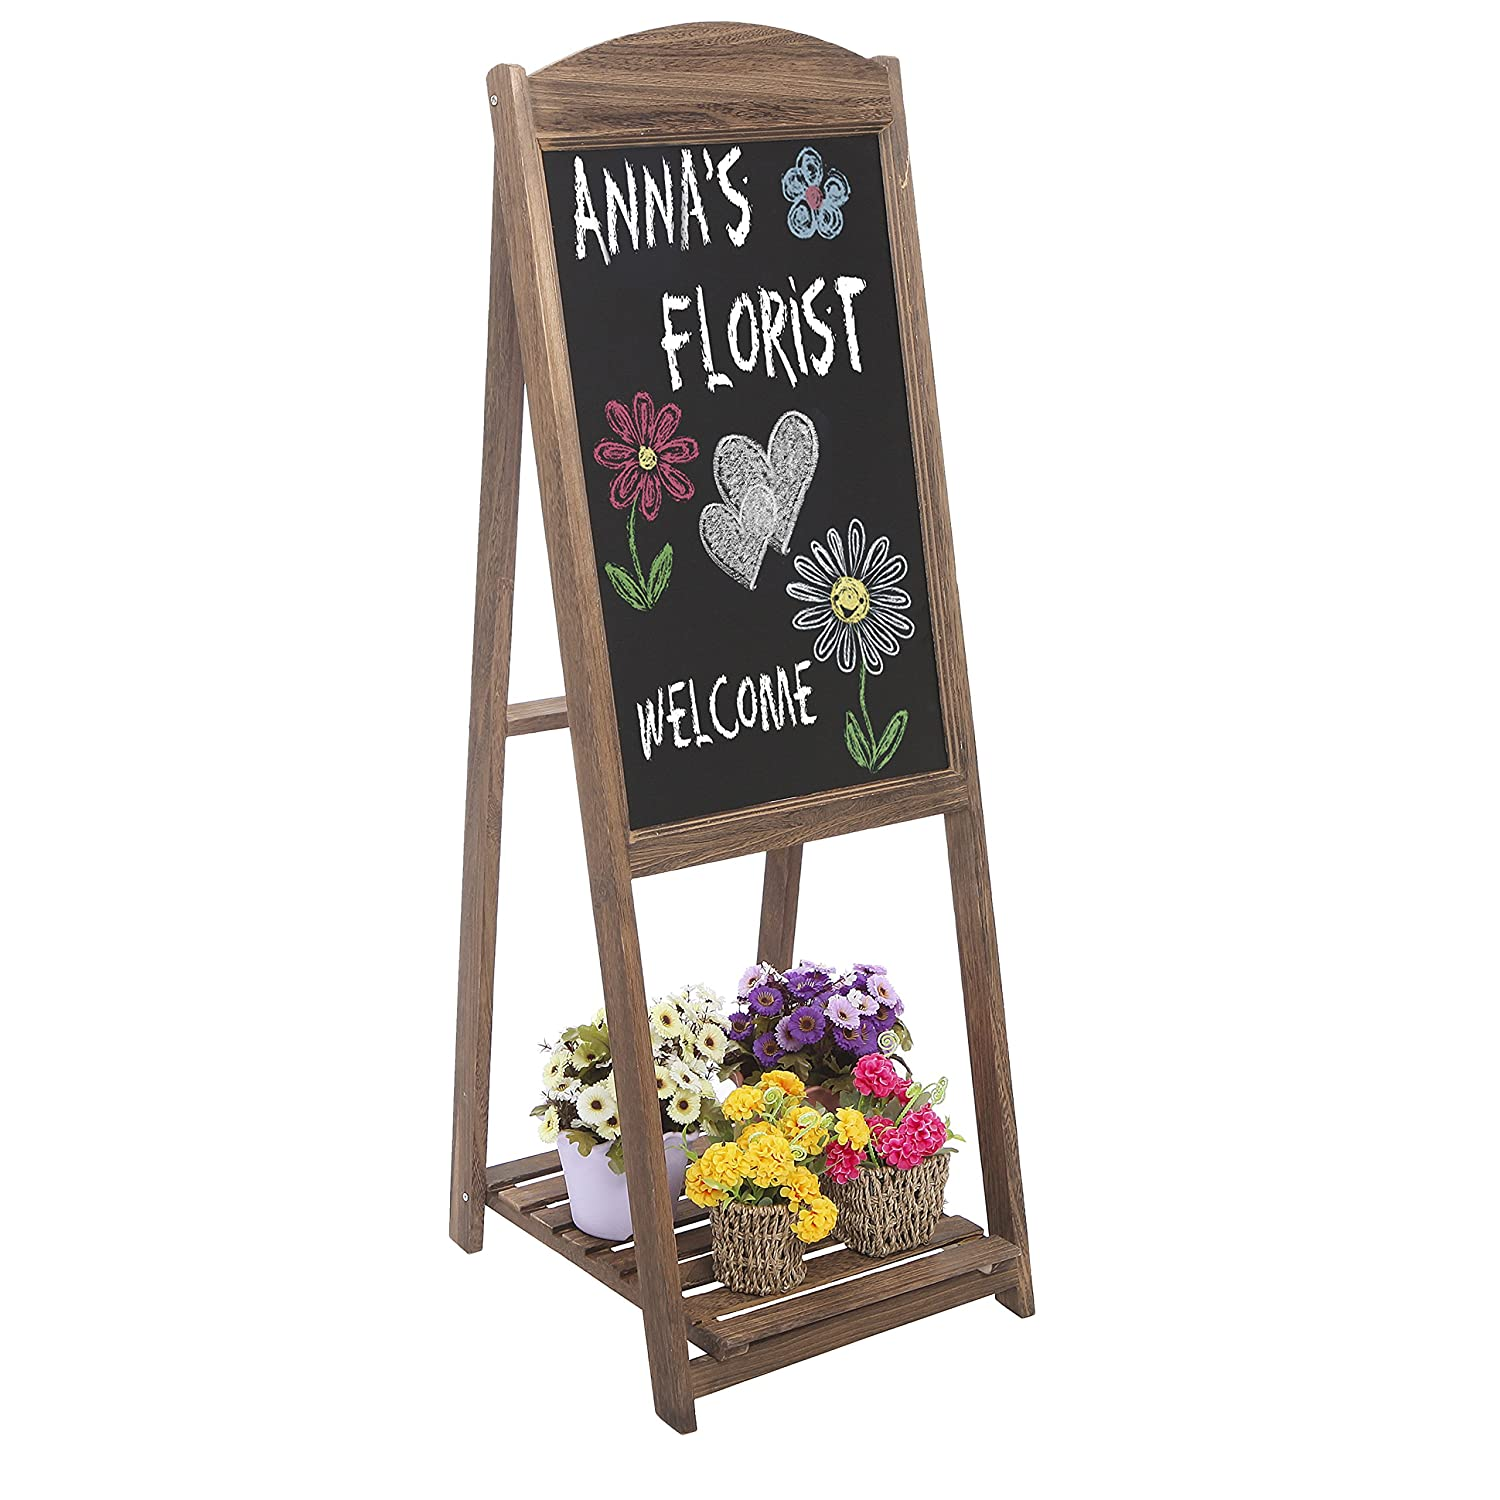 MyGift Rustic Wood A-Frame Easel Chalkboard, Erasable Memo Board w/Shelf, Brown TB-HOM0897BRN